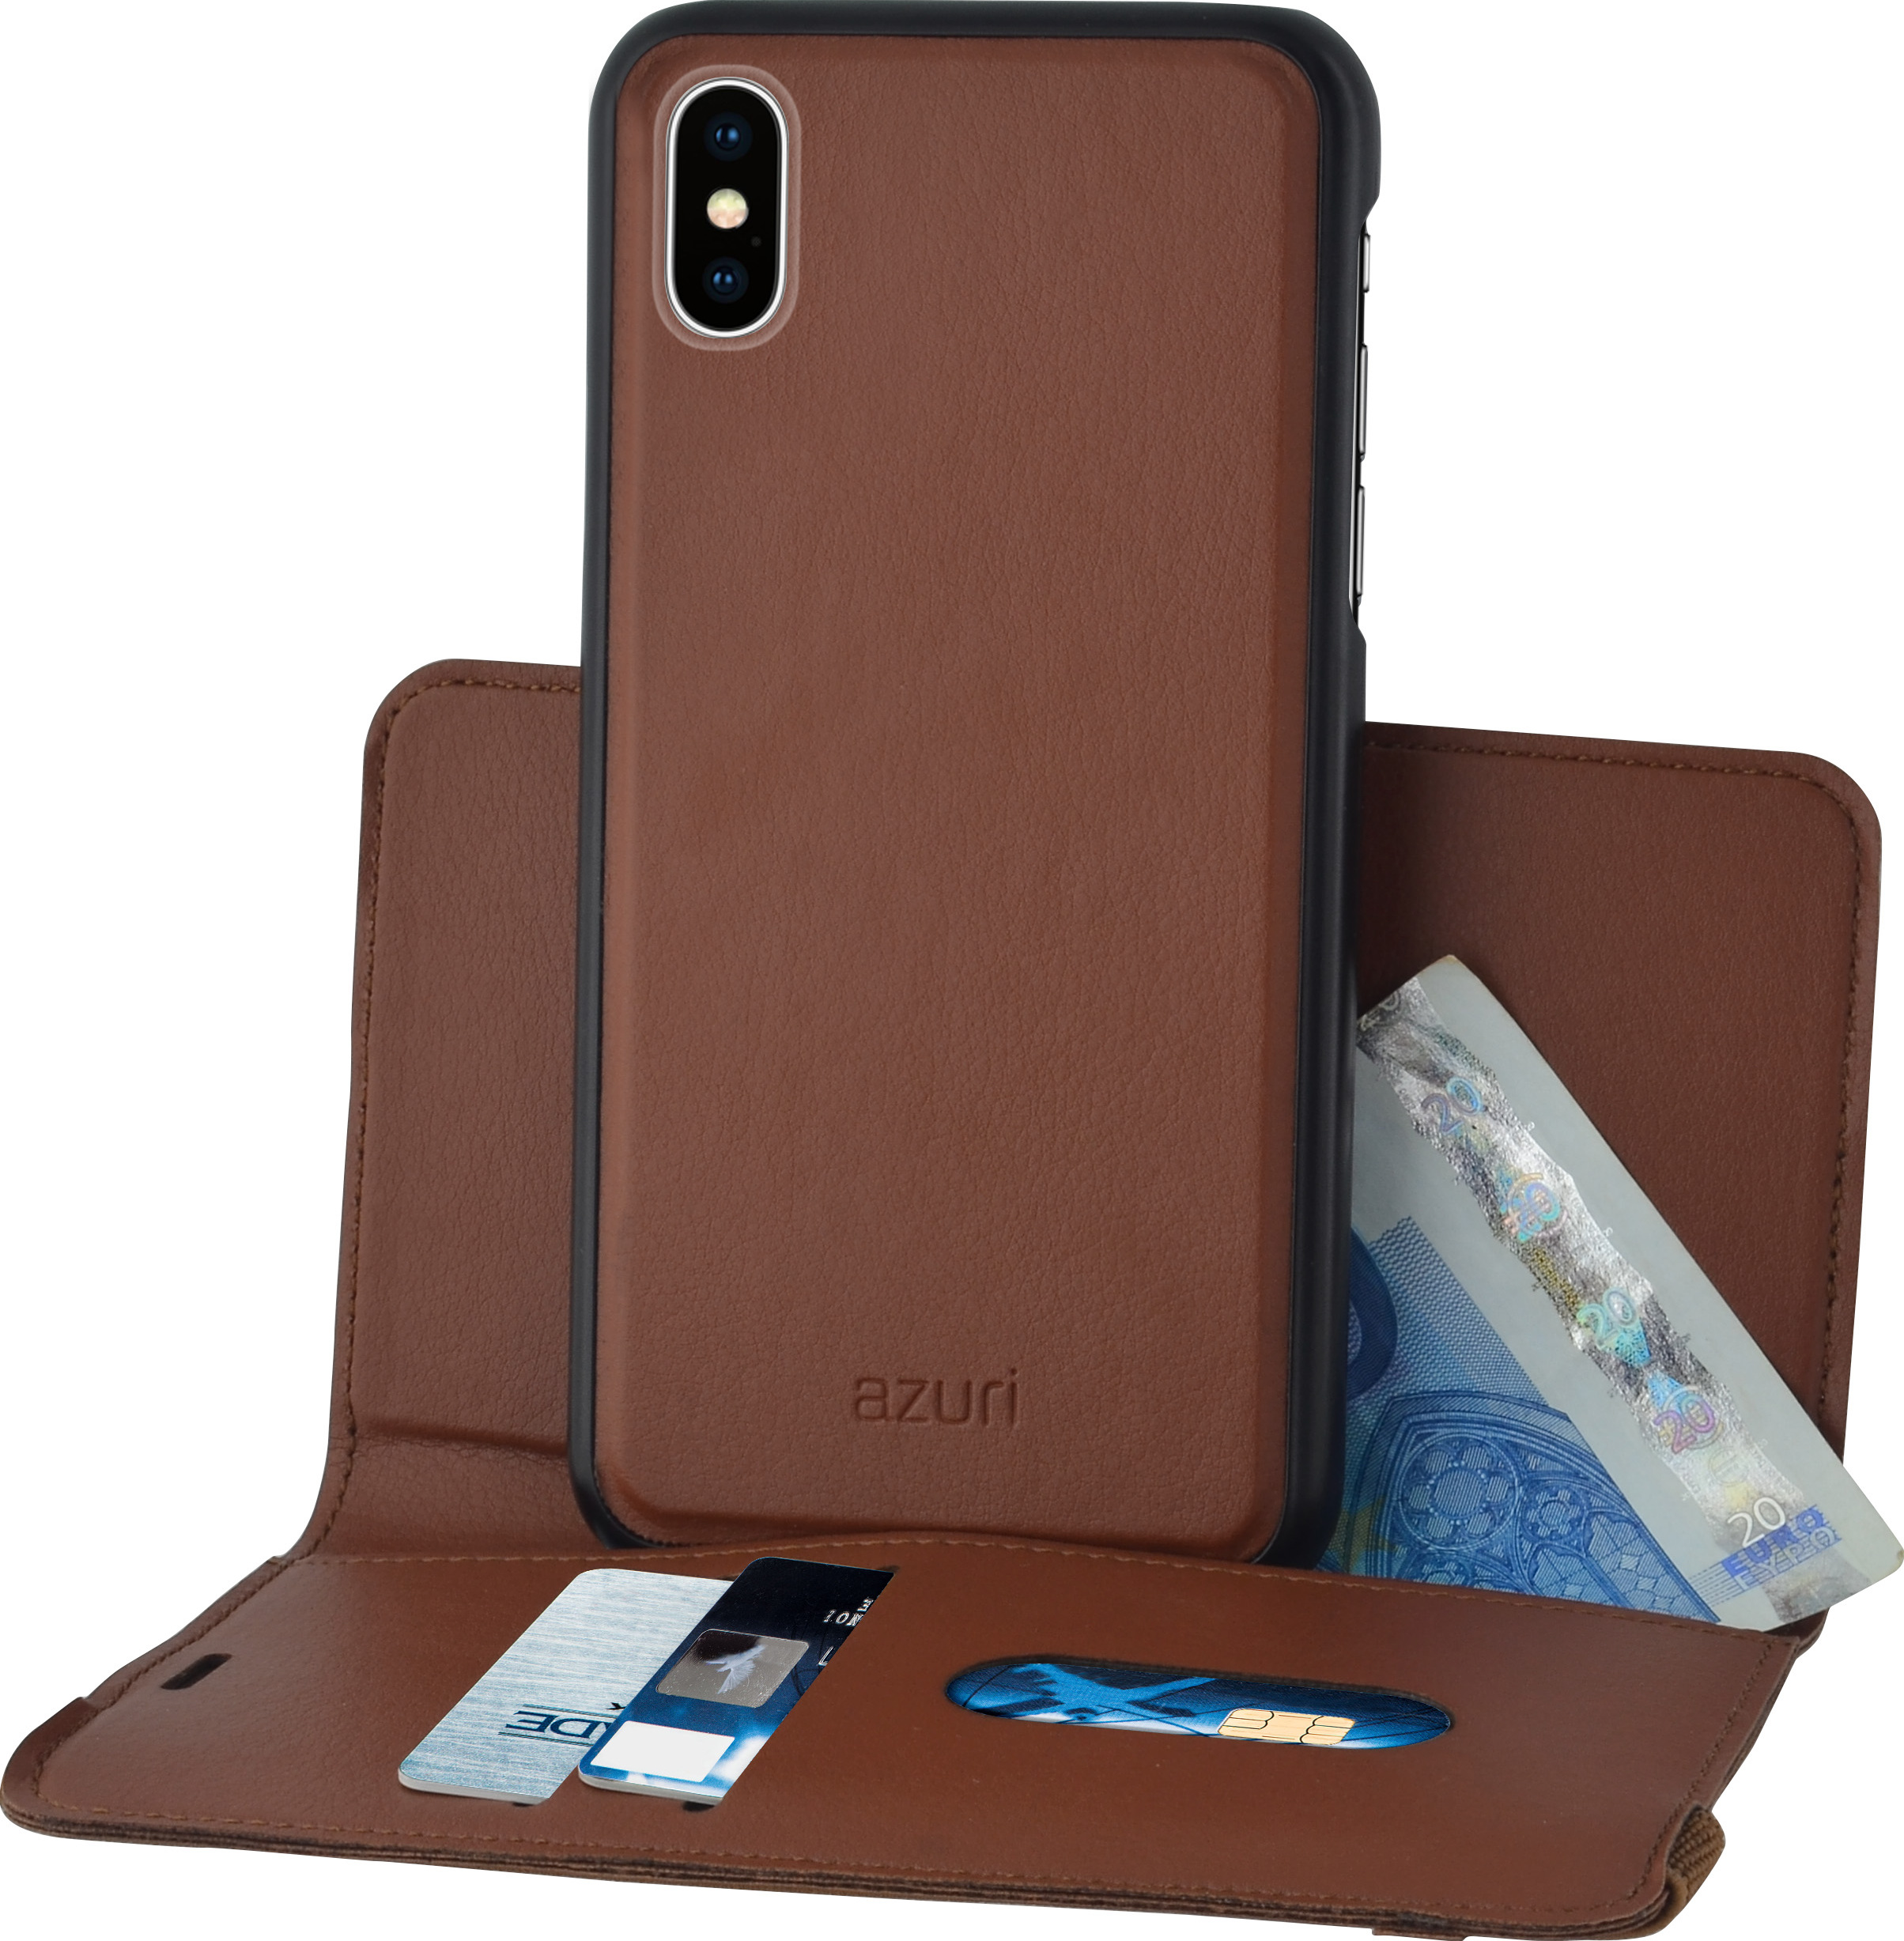 new product 0d095 67cf6 Azuri wallet case with removable magnetic cover - camel - Apple ...